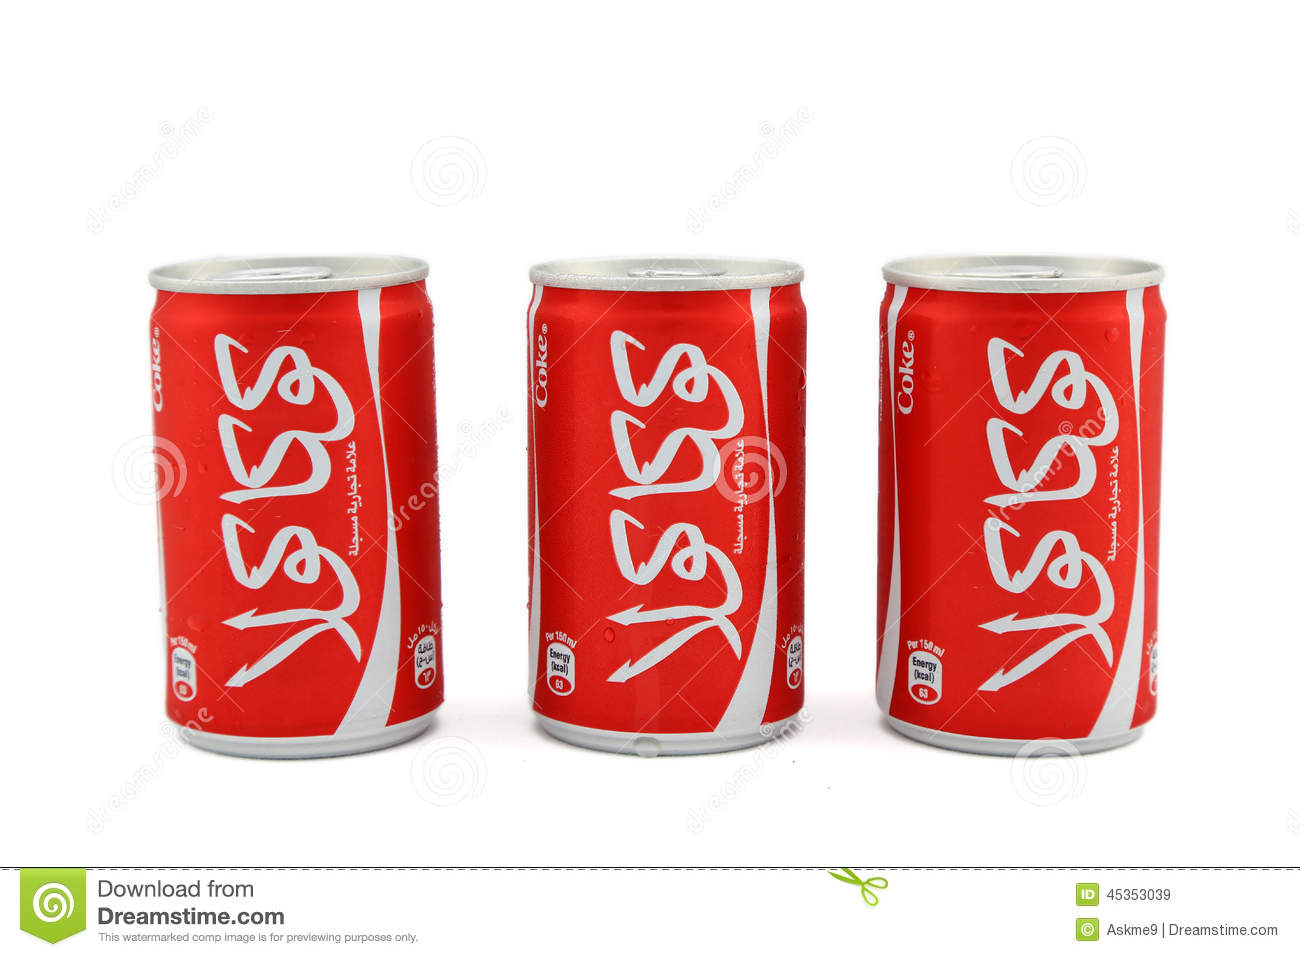 coca-cola-ml-cans-arabic-version-4535303